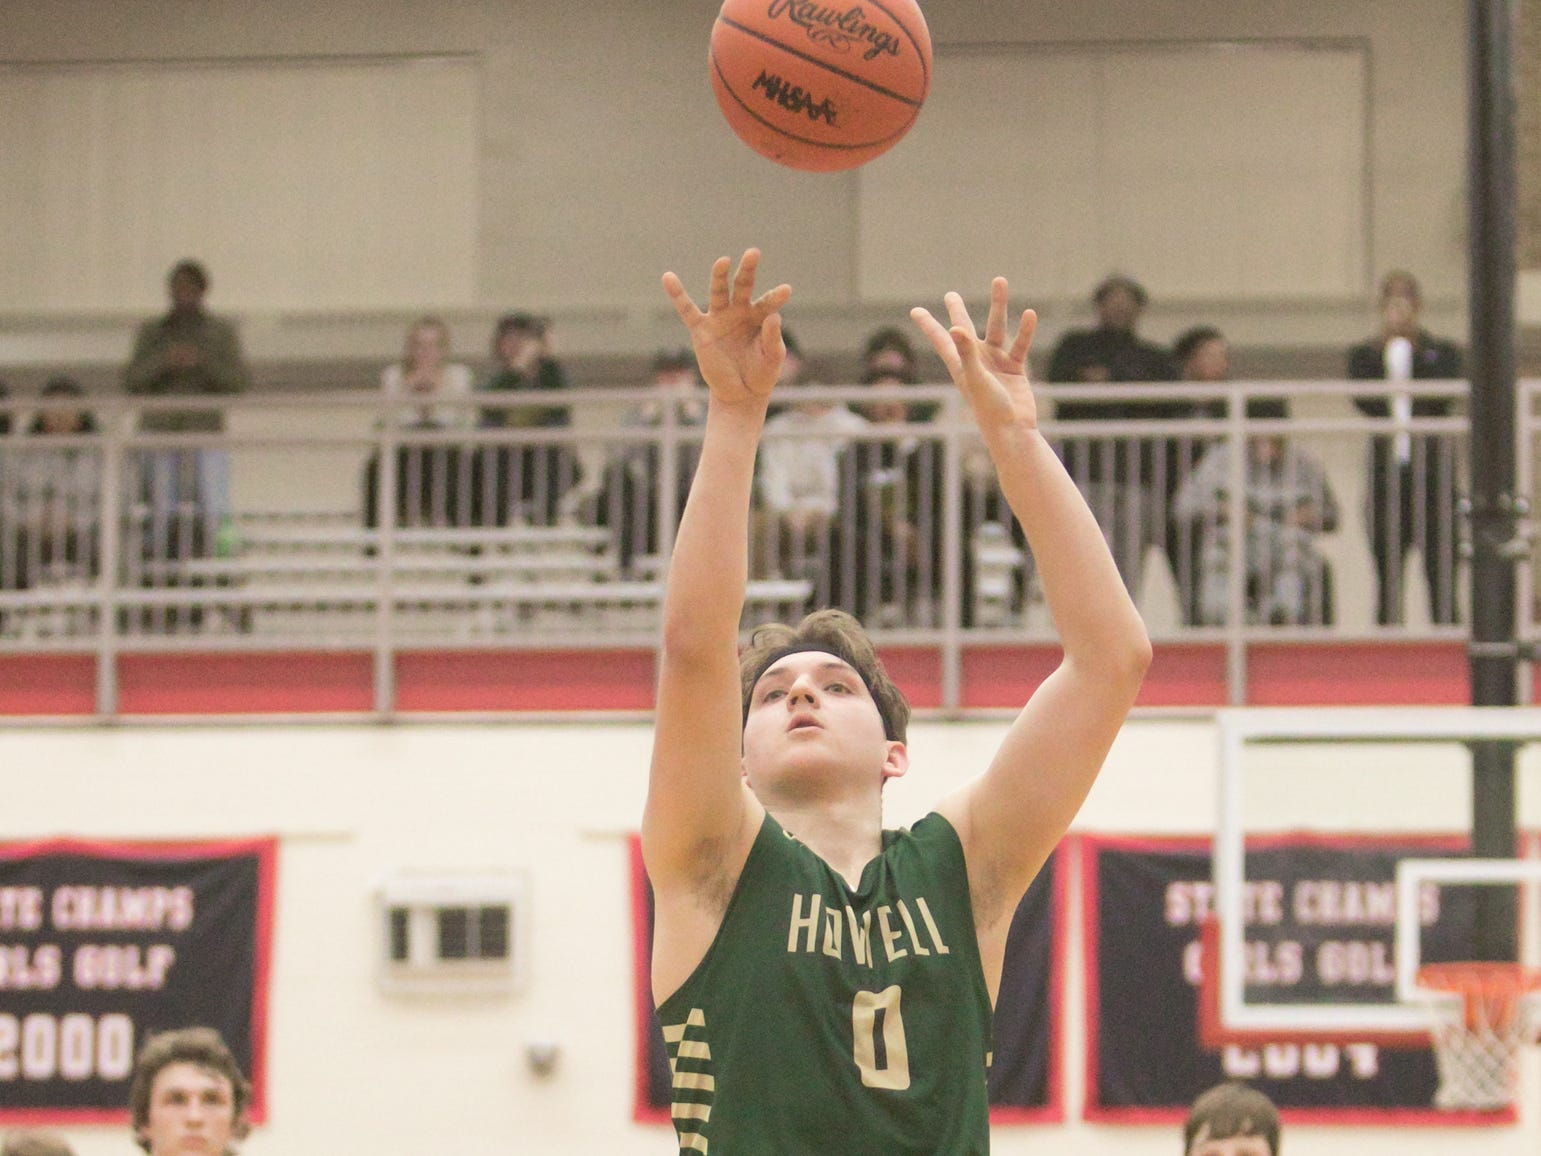 Josh Palo hits the game-winning free throw with 2.3 seconds left, giving Howell a 57-56 victory over Saginaw in the state quarterfinals at Grand Blanc on Tuesday, March 12, 2019.